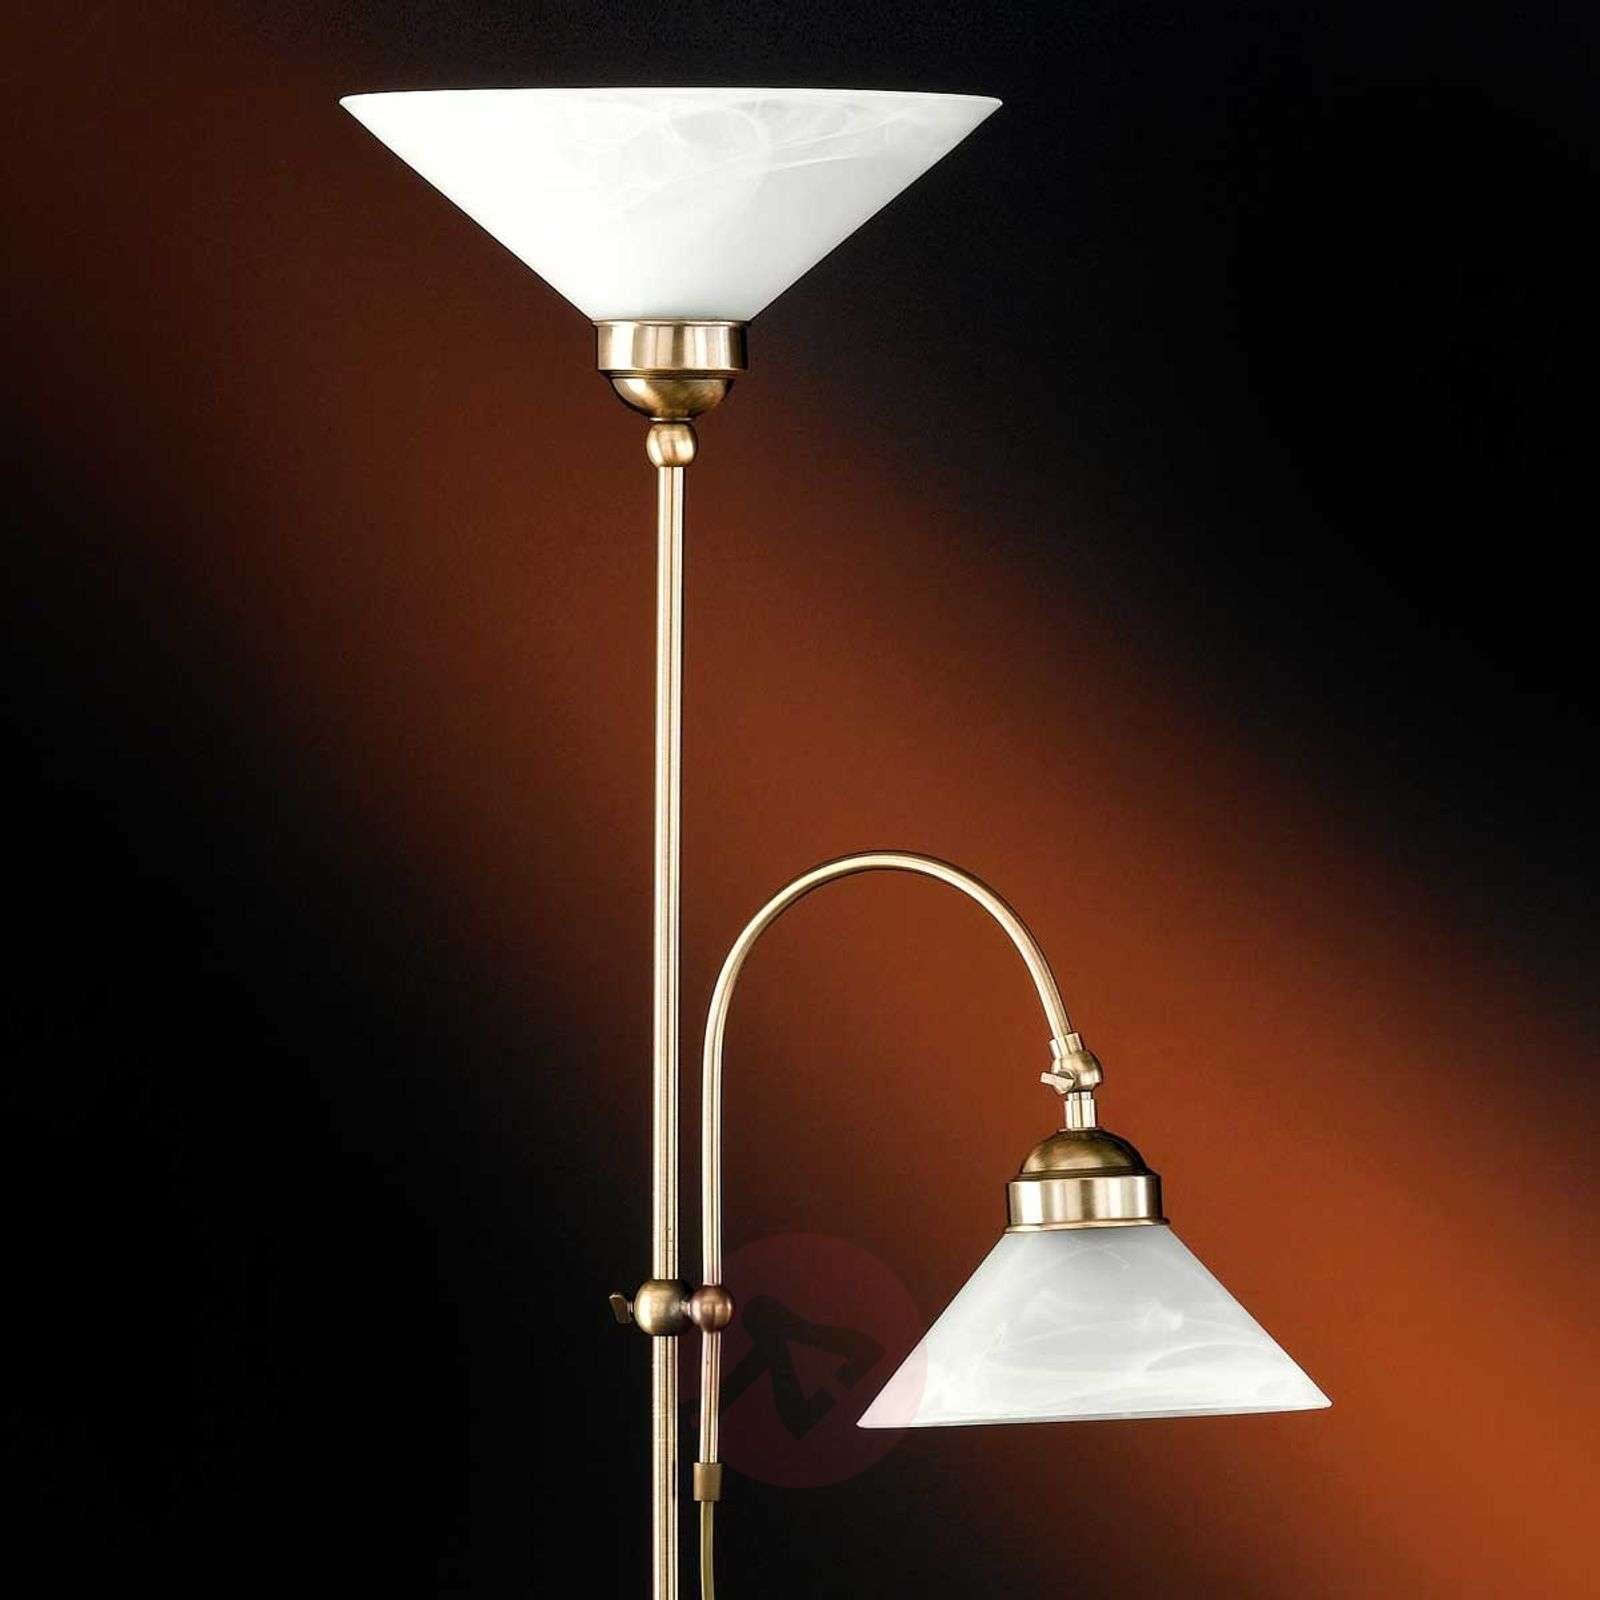 Antwerp uplighter with reading light-4508299-01